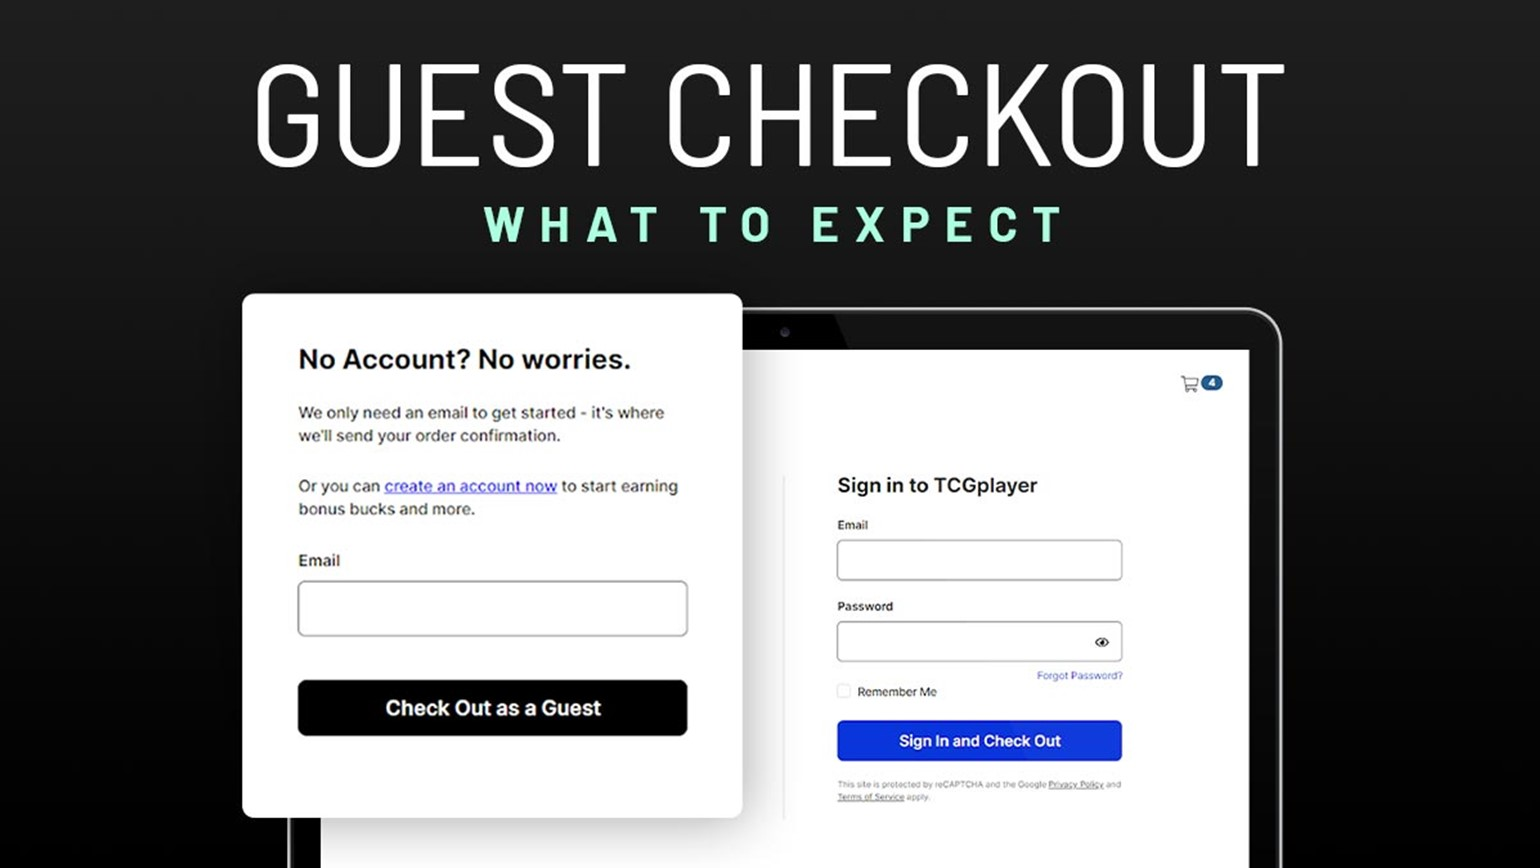 Guest Checkout: What To Expect